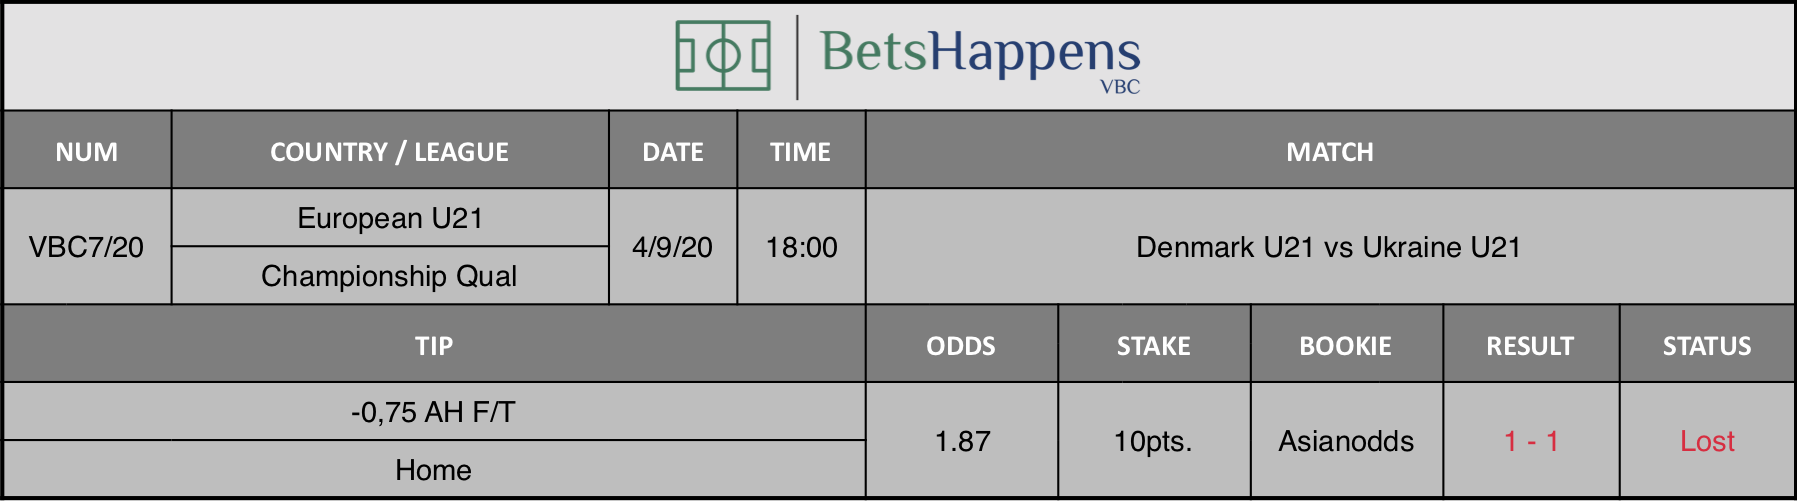 Results of our prediction for the Denmark U21 vs Ukraine U21 match in which -0.75 AH F / T Home is advised.